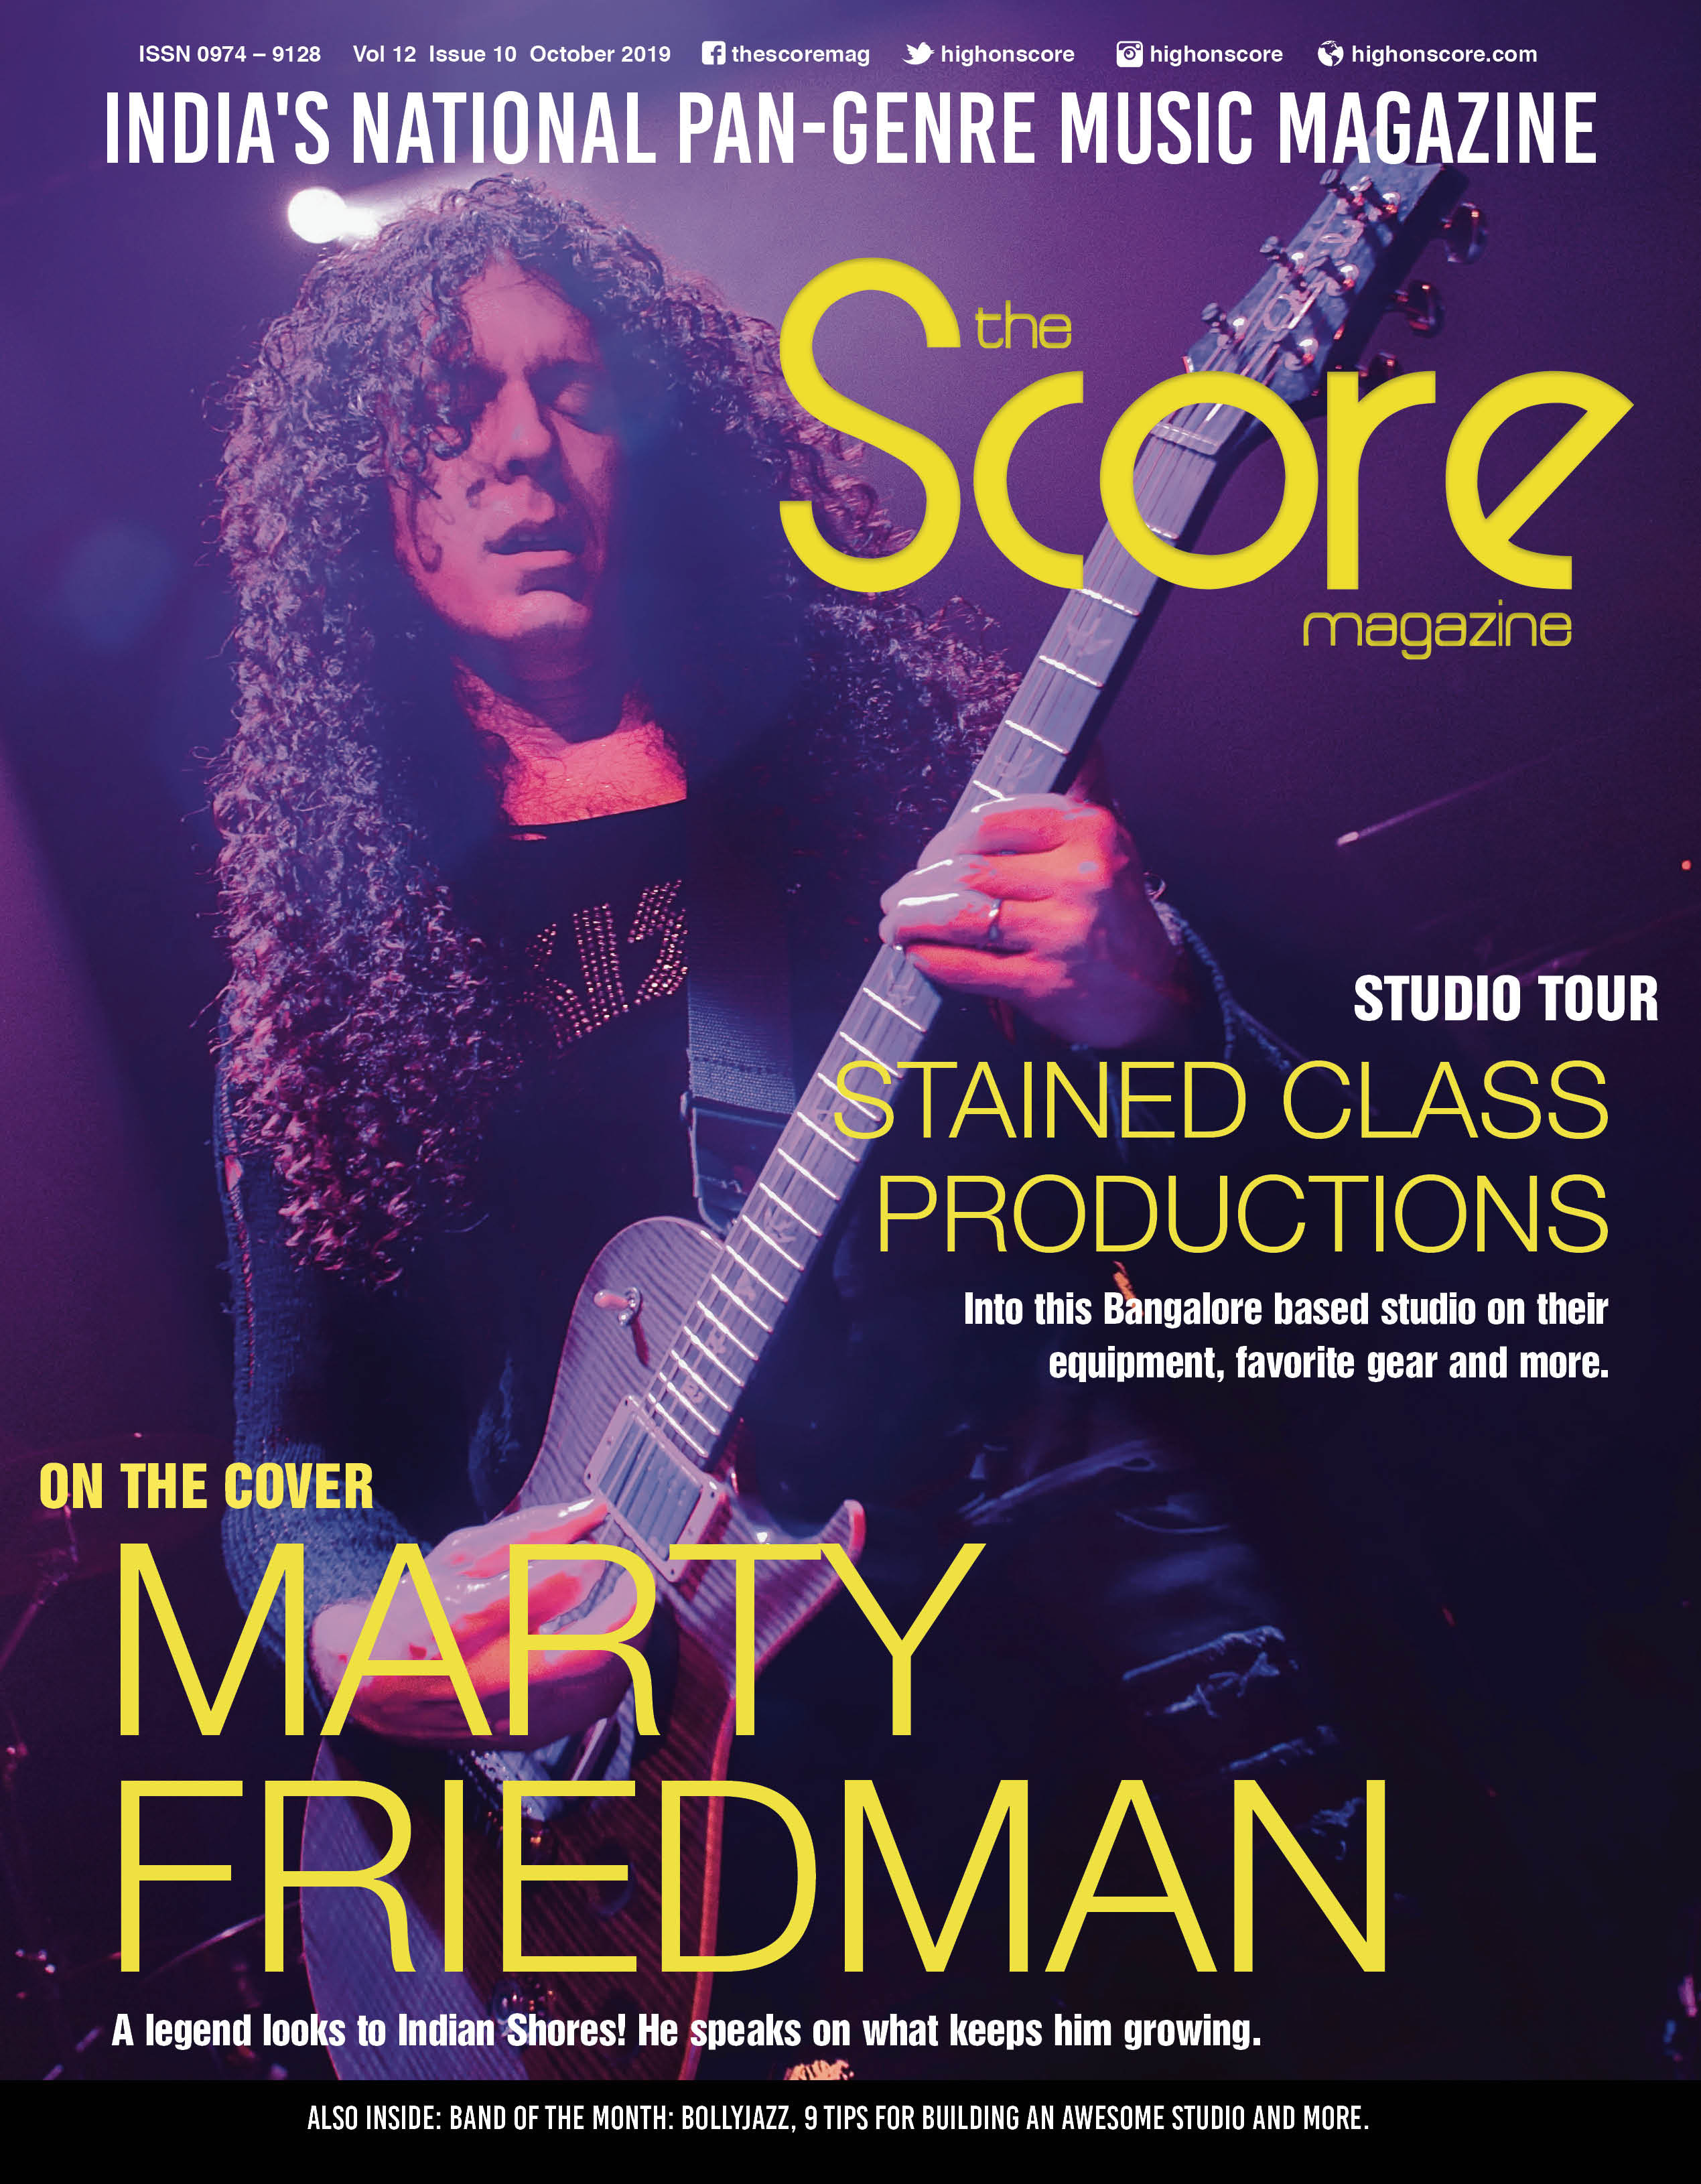 November 2019 issue featuring Marty Friedman on the cover